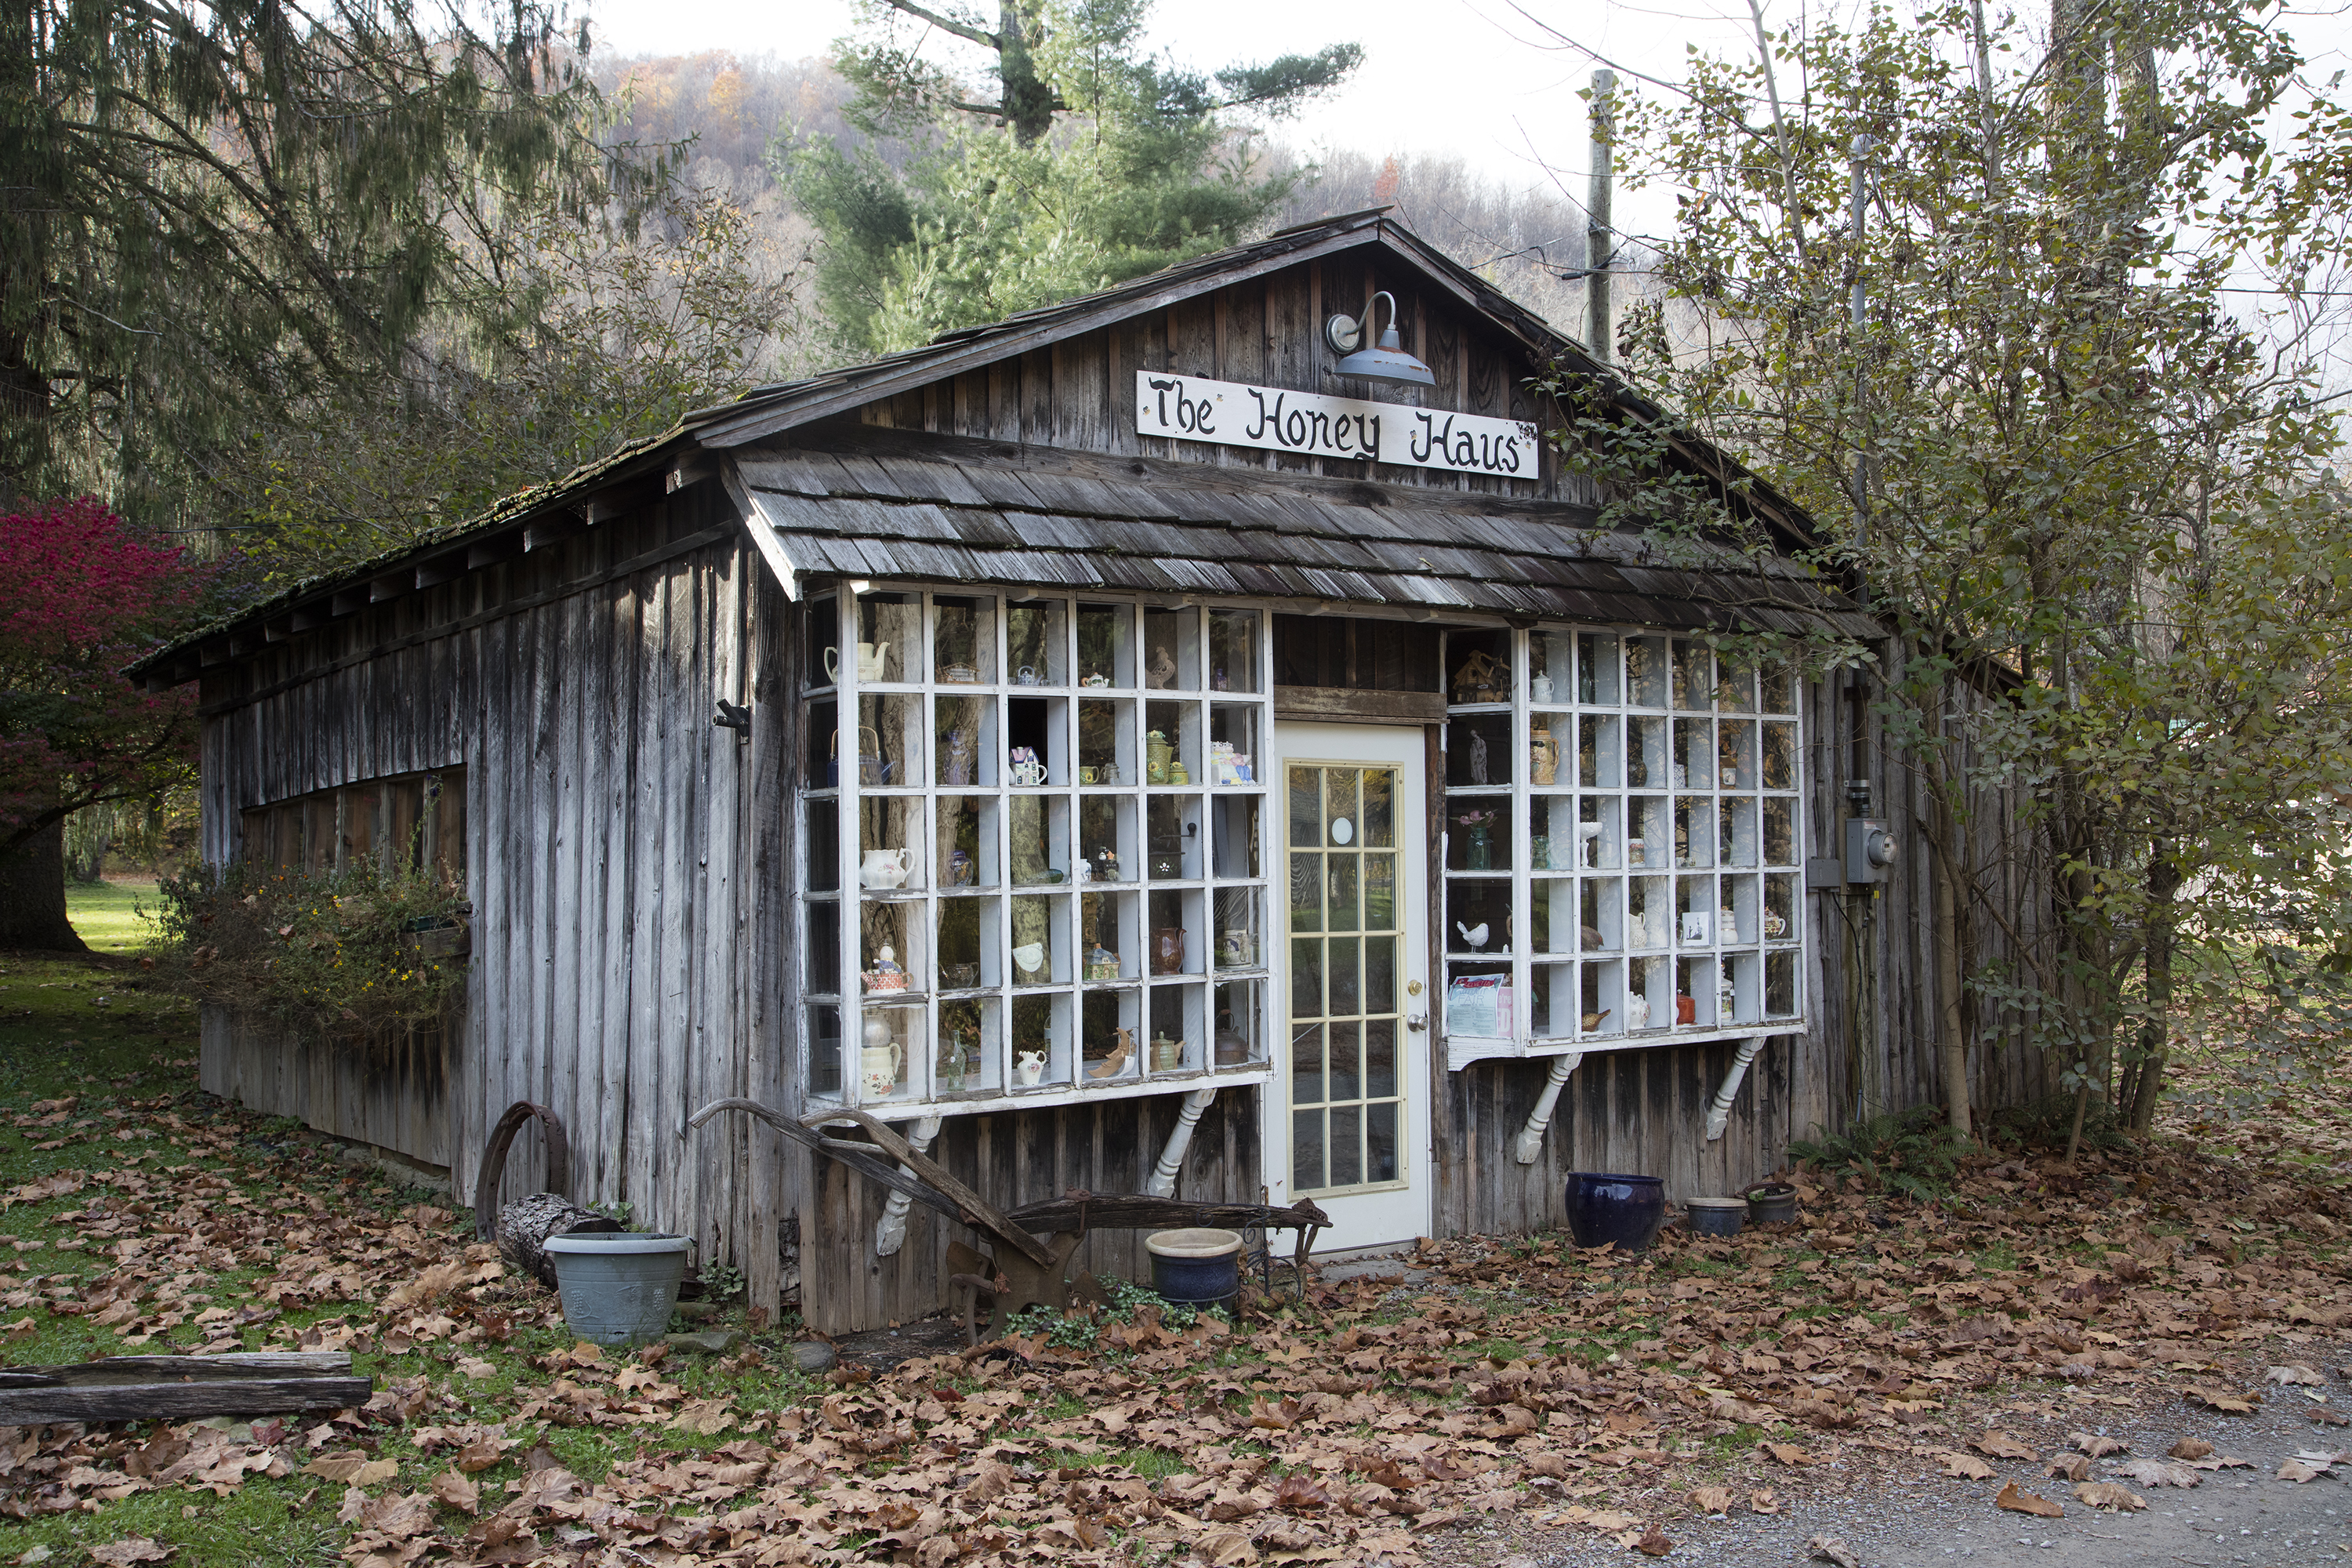 Photo 1: Photo by Andrew Bain via Wikimedia Commons. Photo 2: The Honey Haus located in Helvetia, West Virginia. Photo courtesy of the Library of Congress.